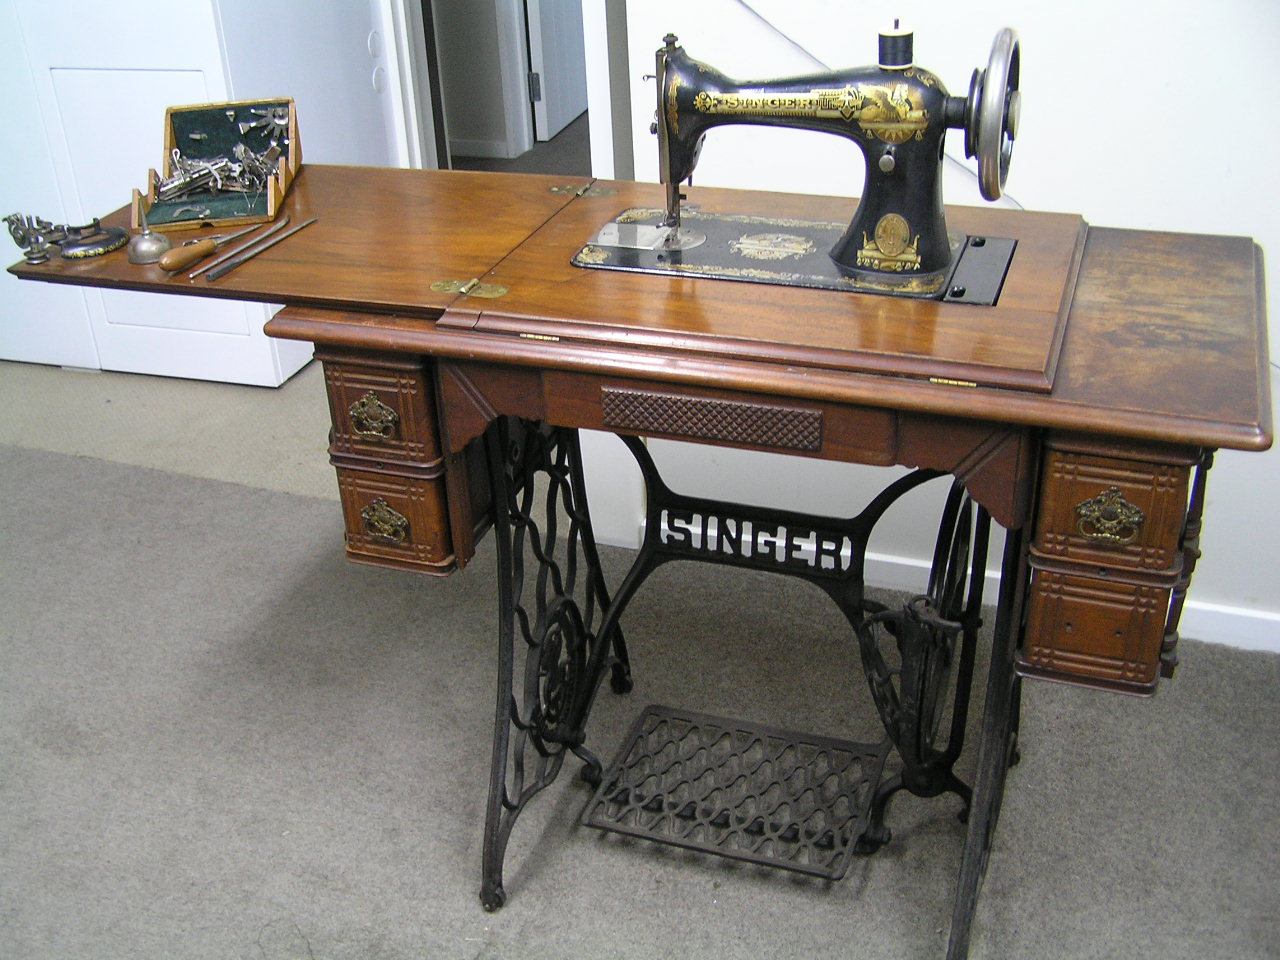 how to clean an old singer sewing machine